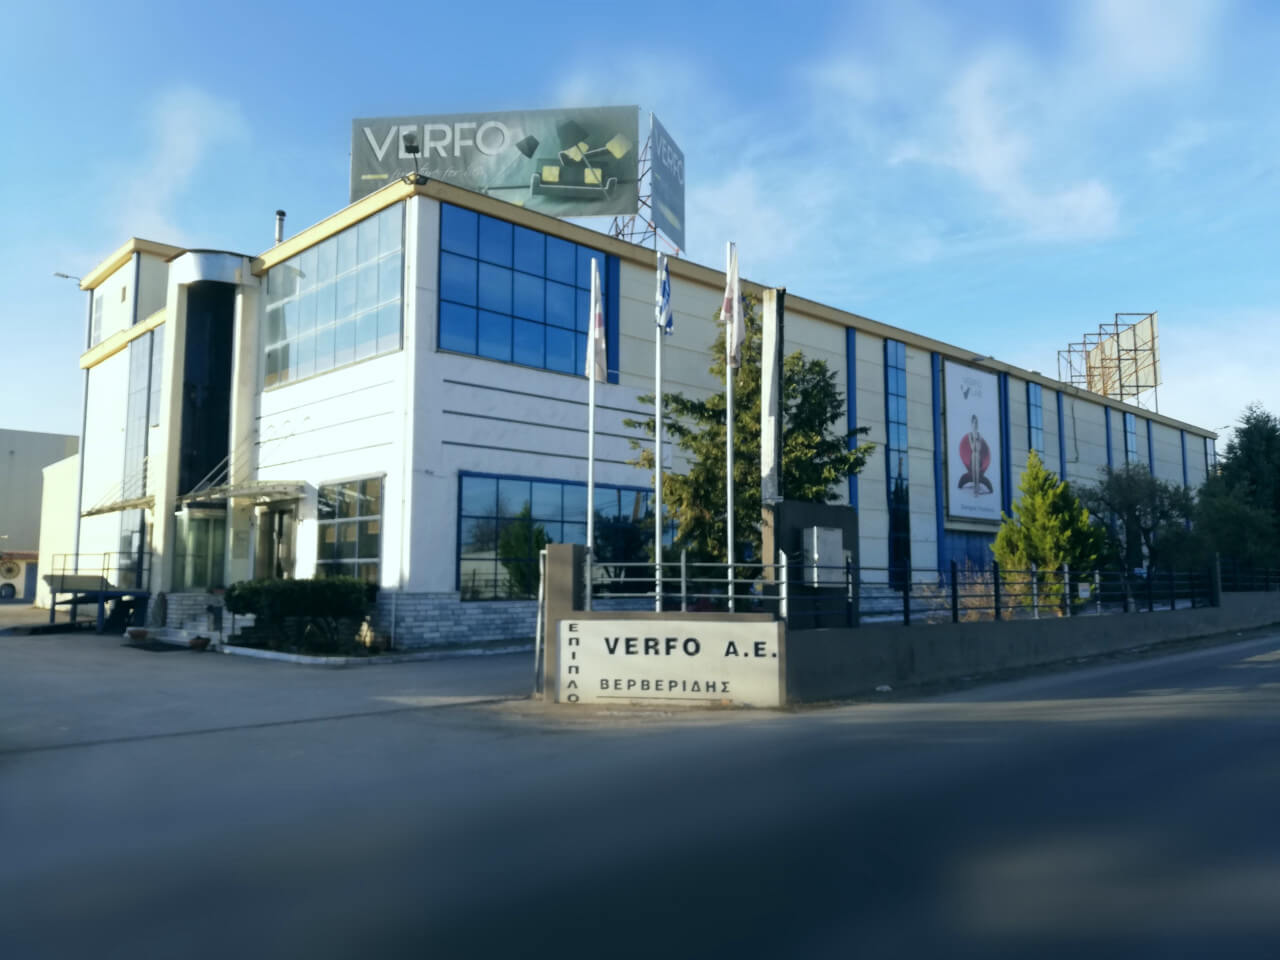 verfo furniture building outside